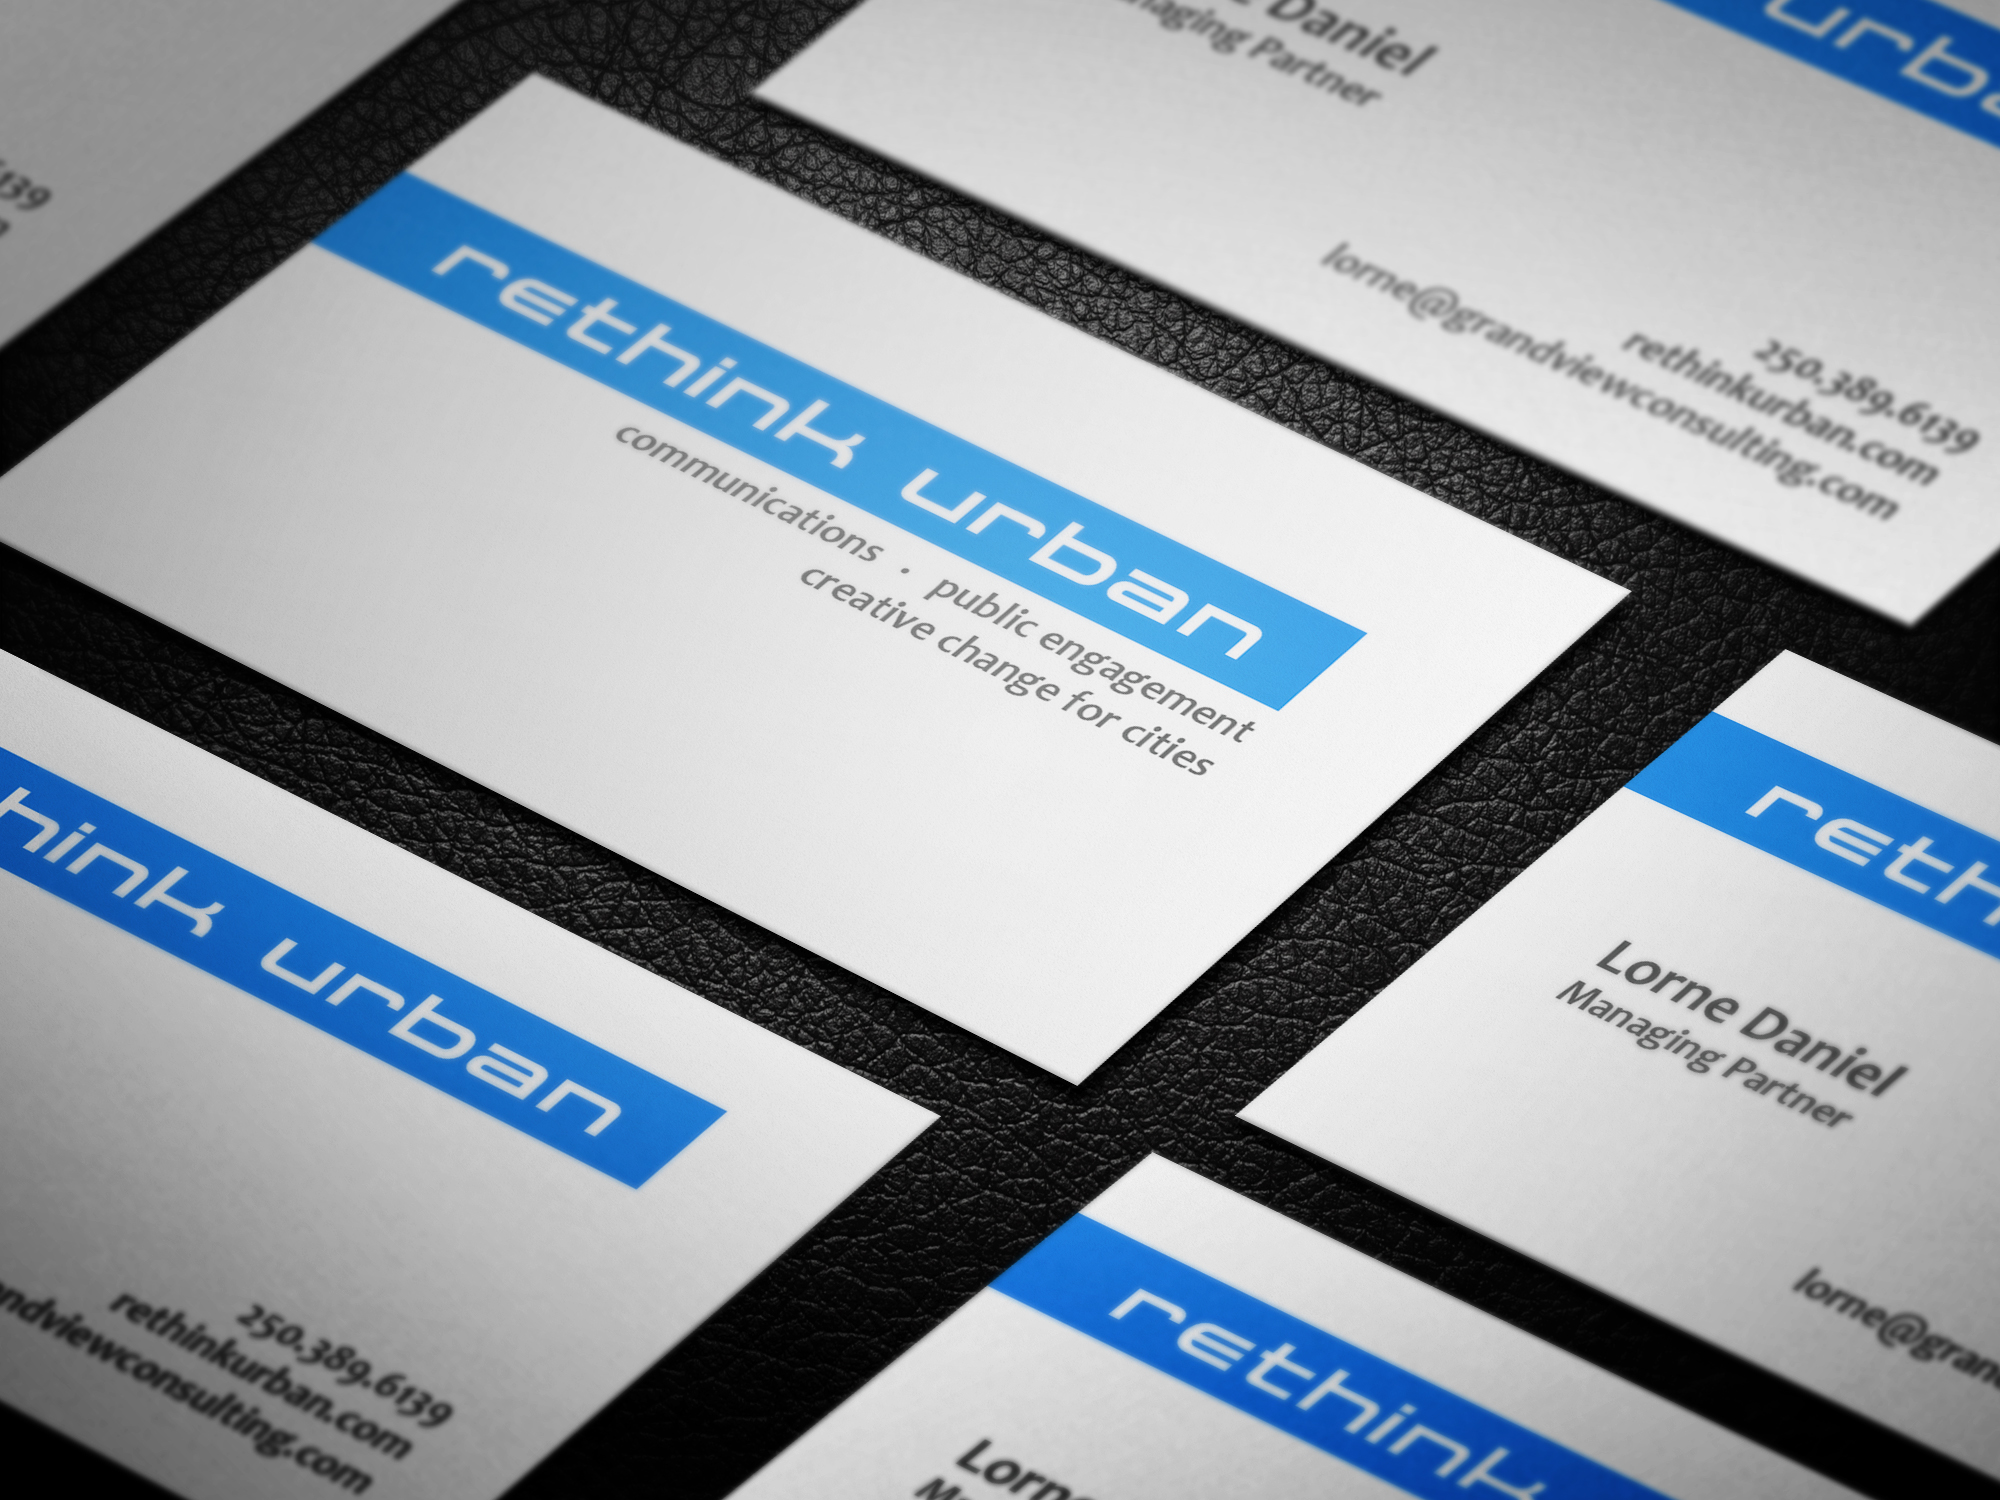 Business Cards for Rethink Urban